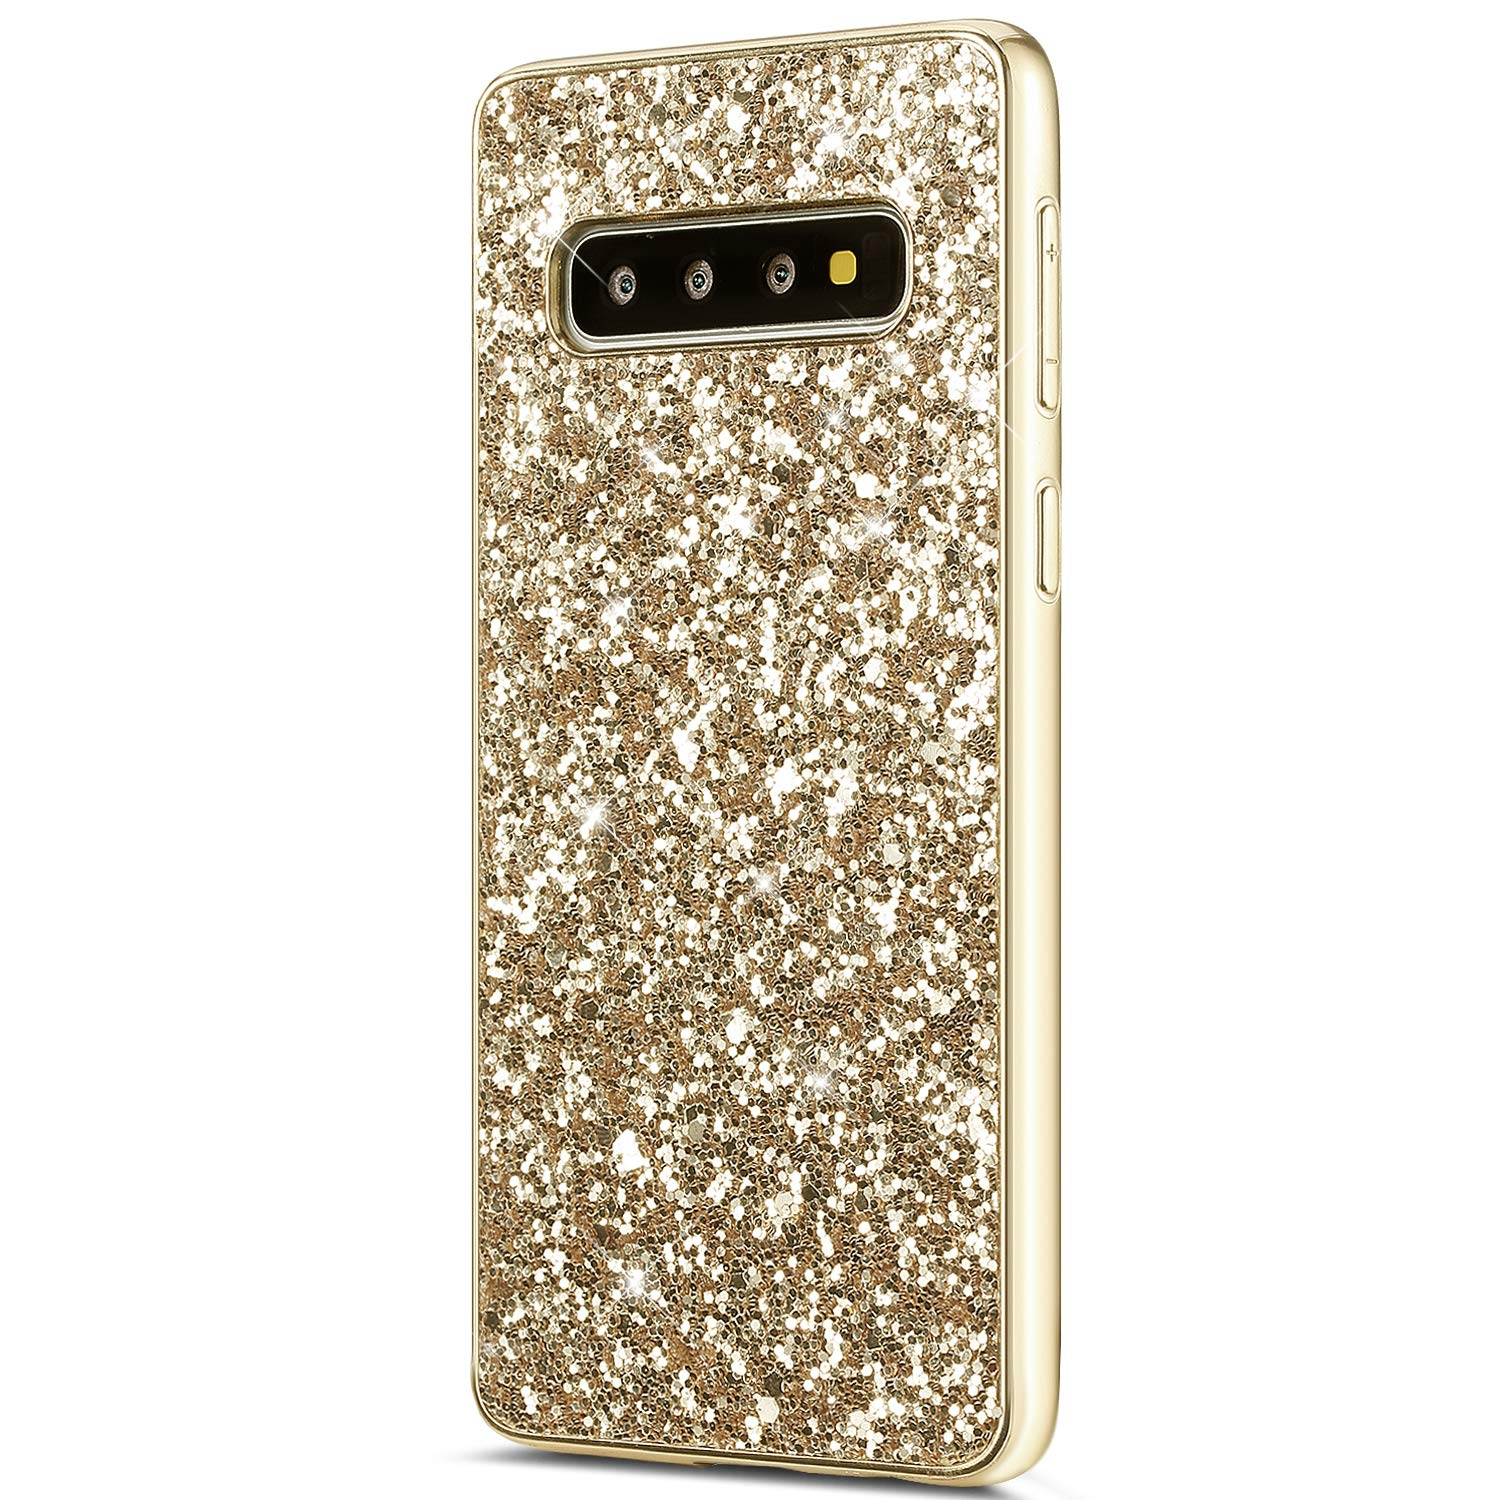 YSIMEE Compatible with Case Samsung Galaxy S10 Plus Silicone Rubber Soft Frame Ultra Slim Gel TPU Bumper Shock Absorption Girls Women Shockproof Protector Bling Glitter Sparkle Hard Back Covers,Gold